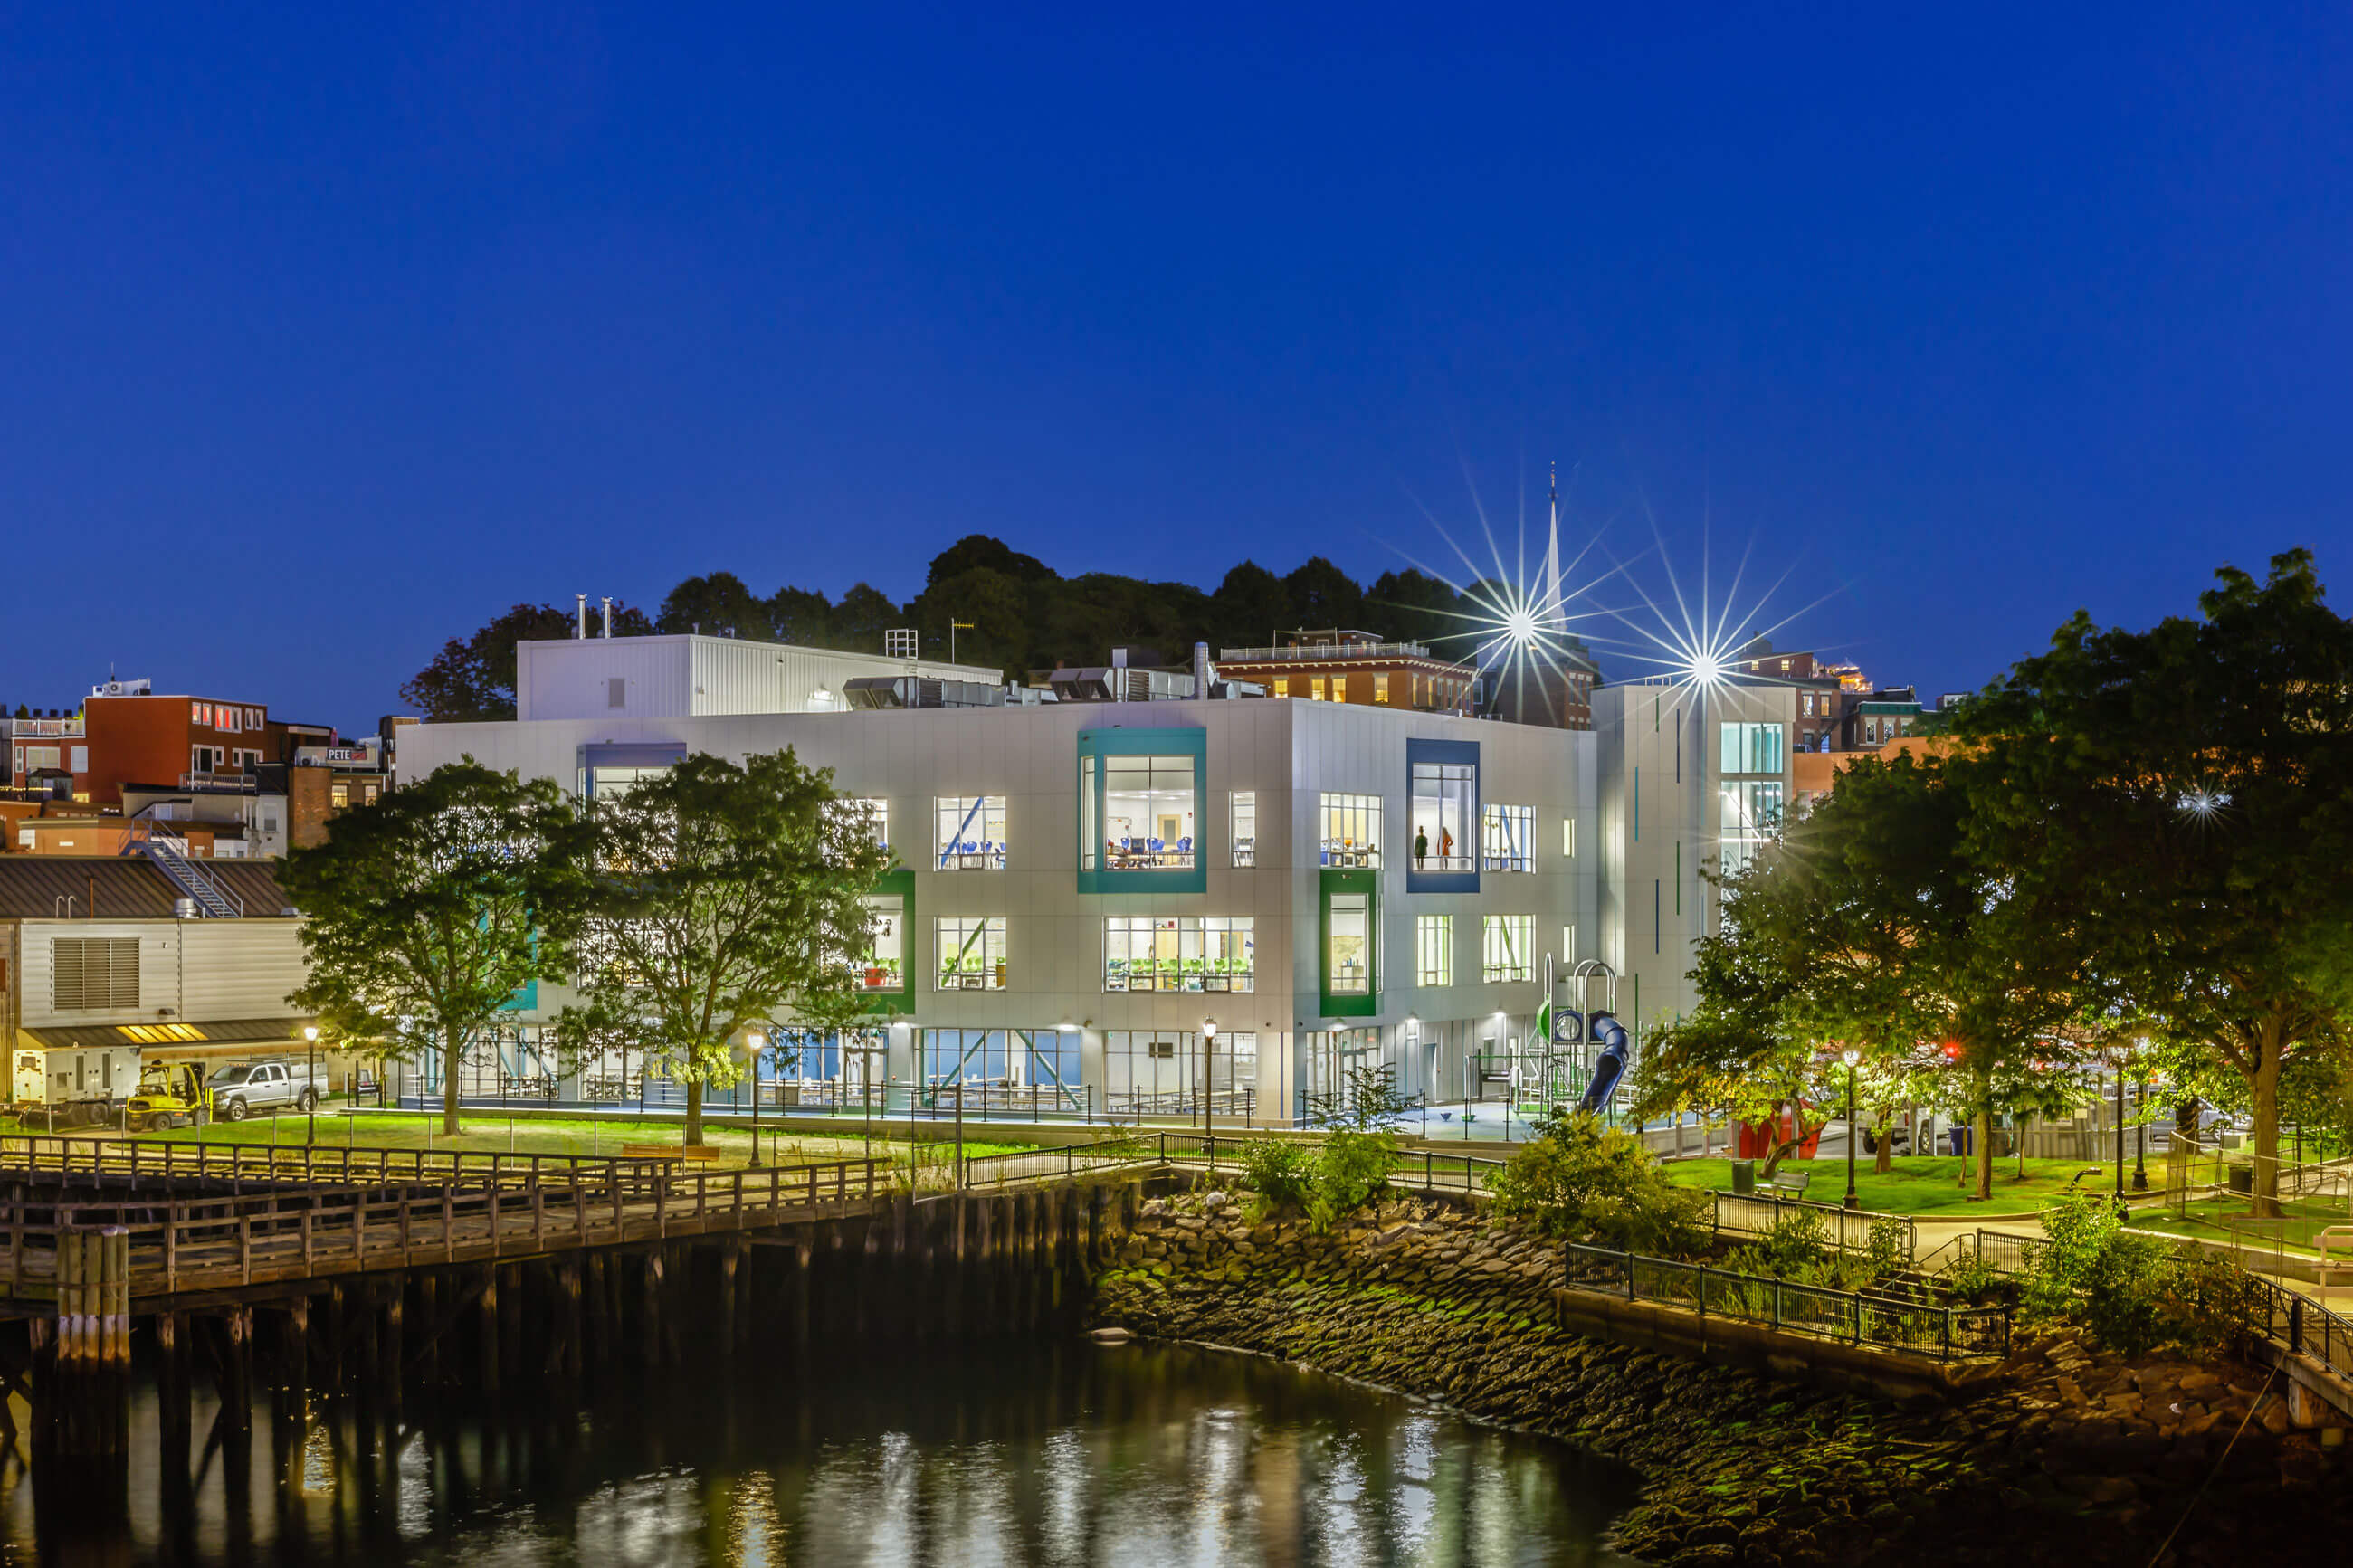 Eliot Innovation school lit up at night, with its lights reflecting on the harbor.